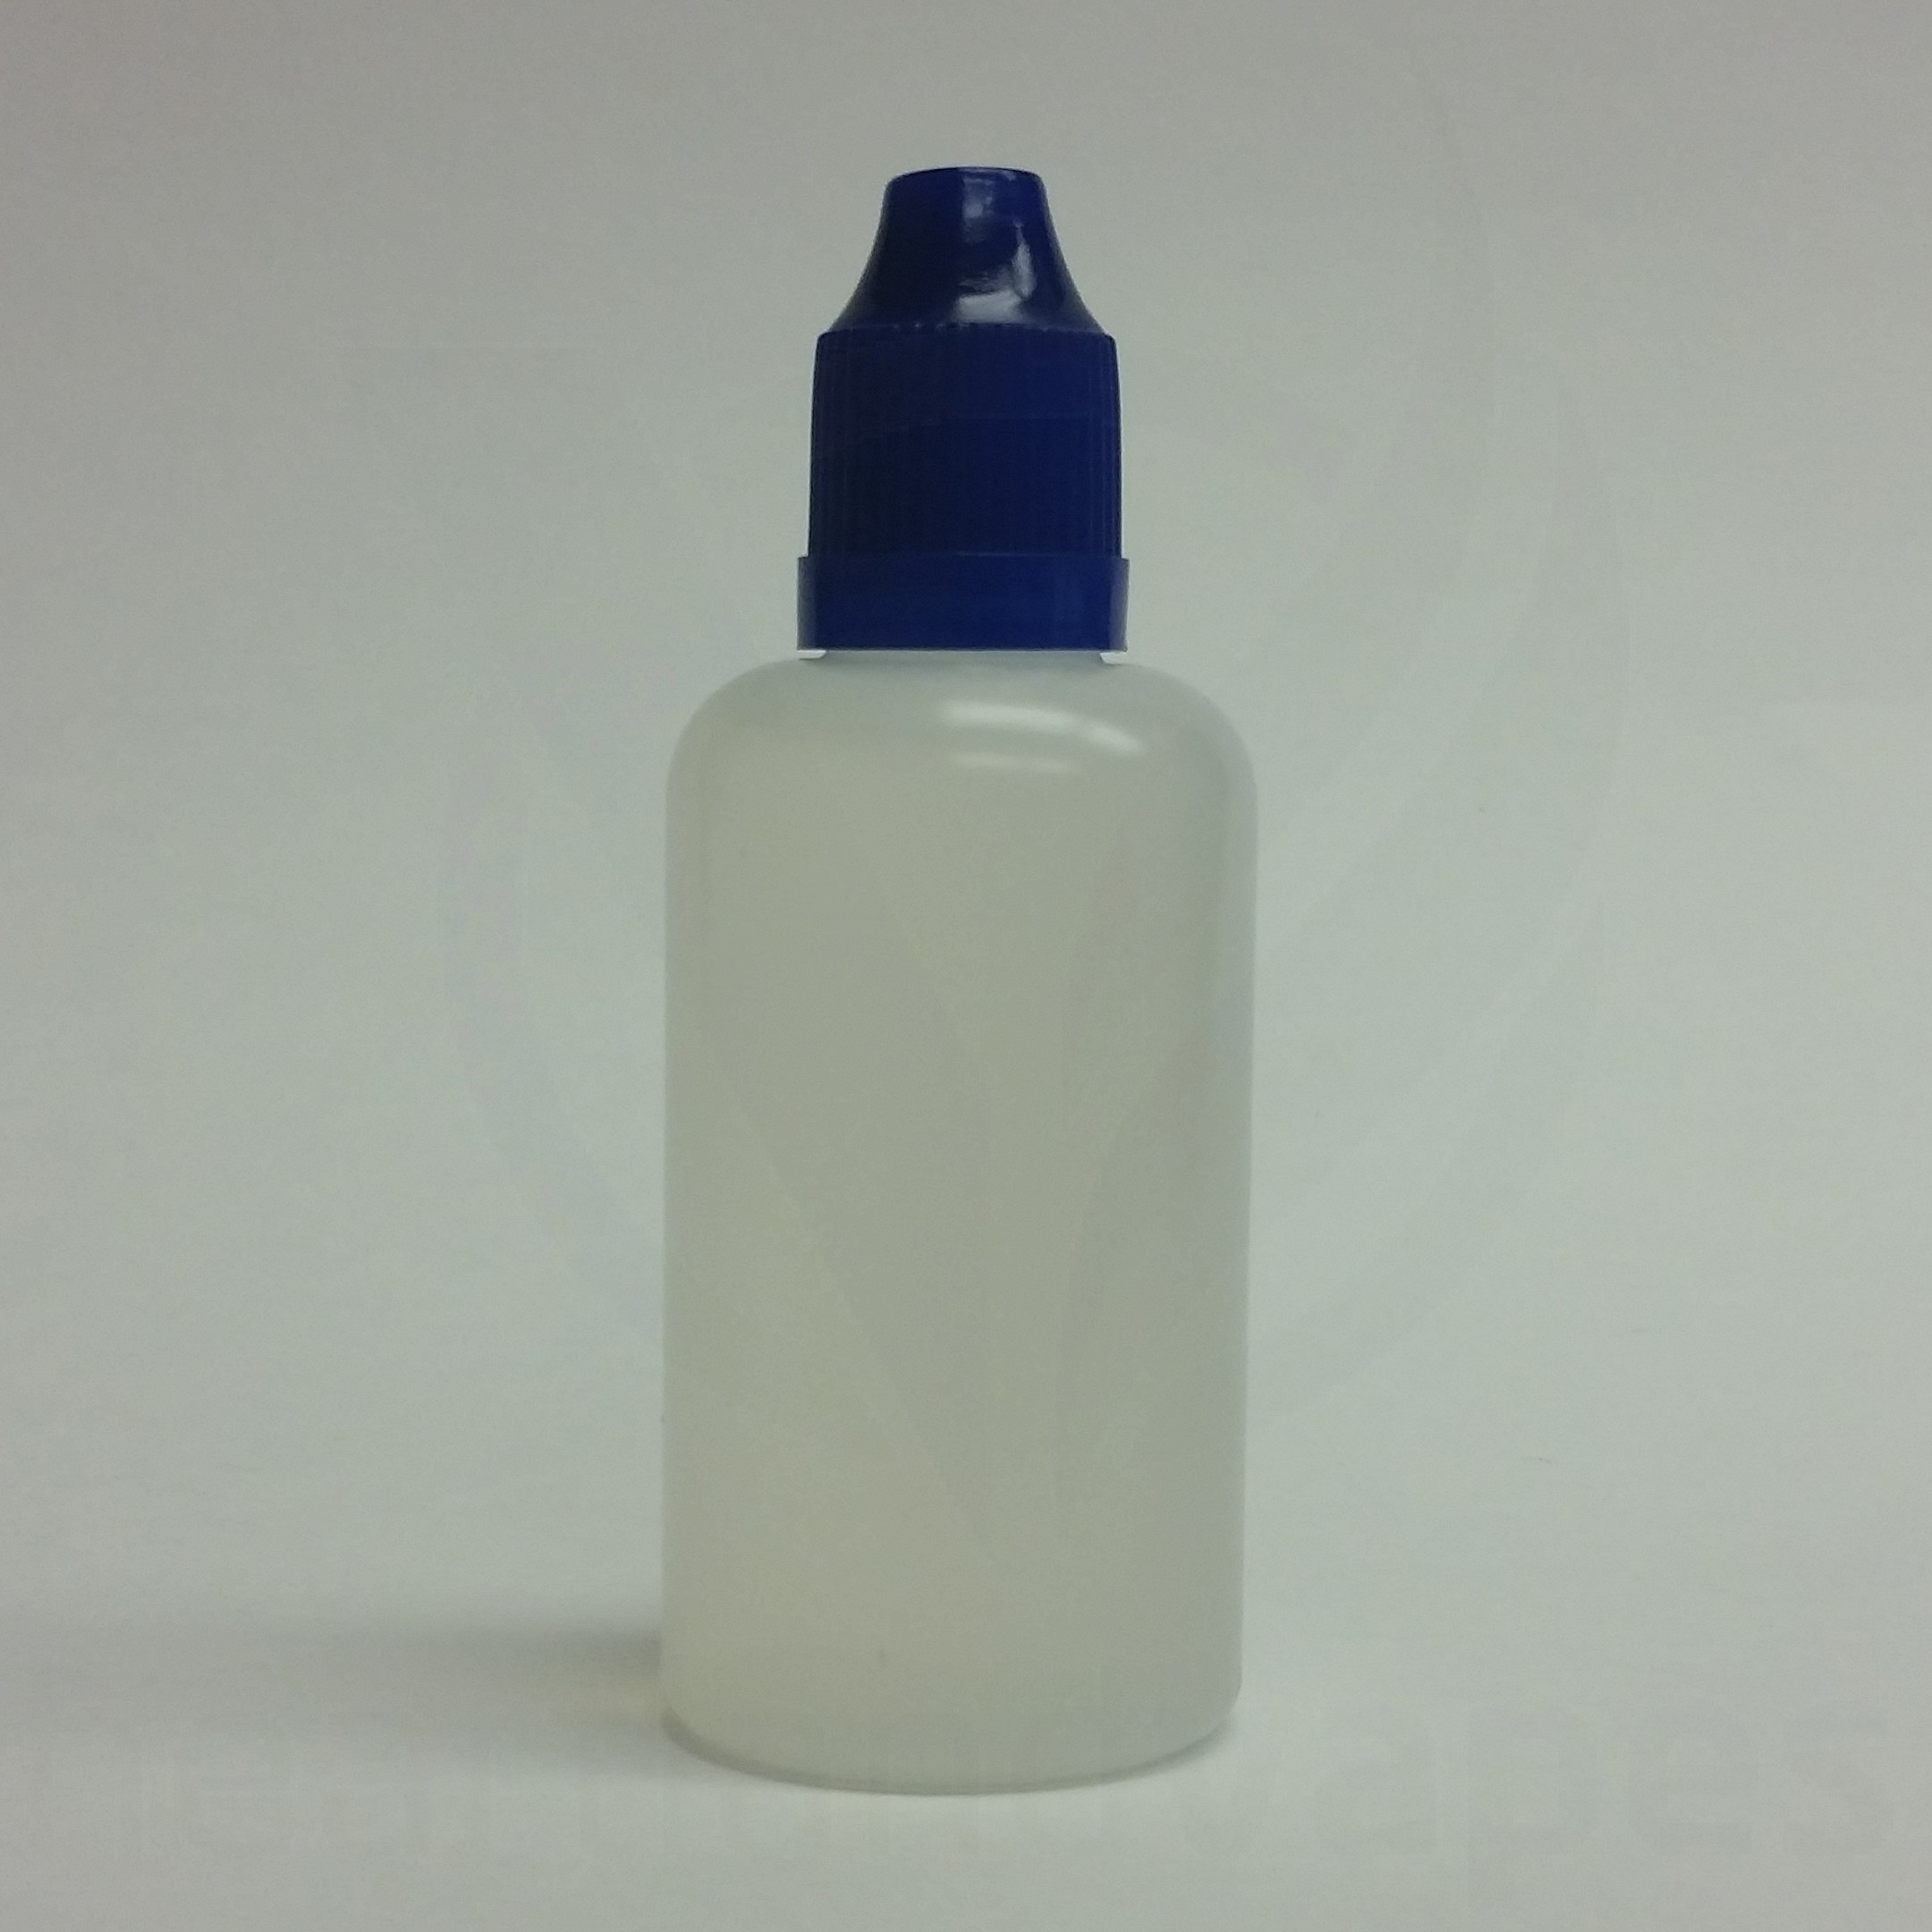 50ml Eliquid Bottles With Childproof Cap And Thin Dropper